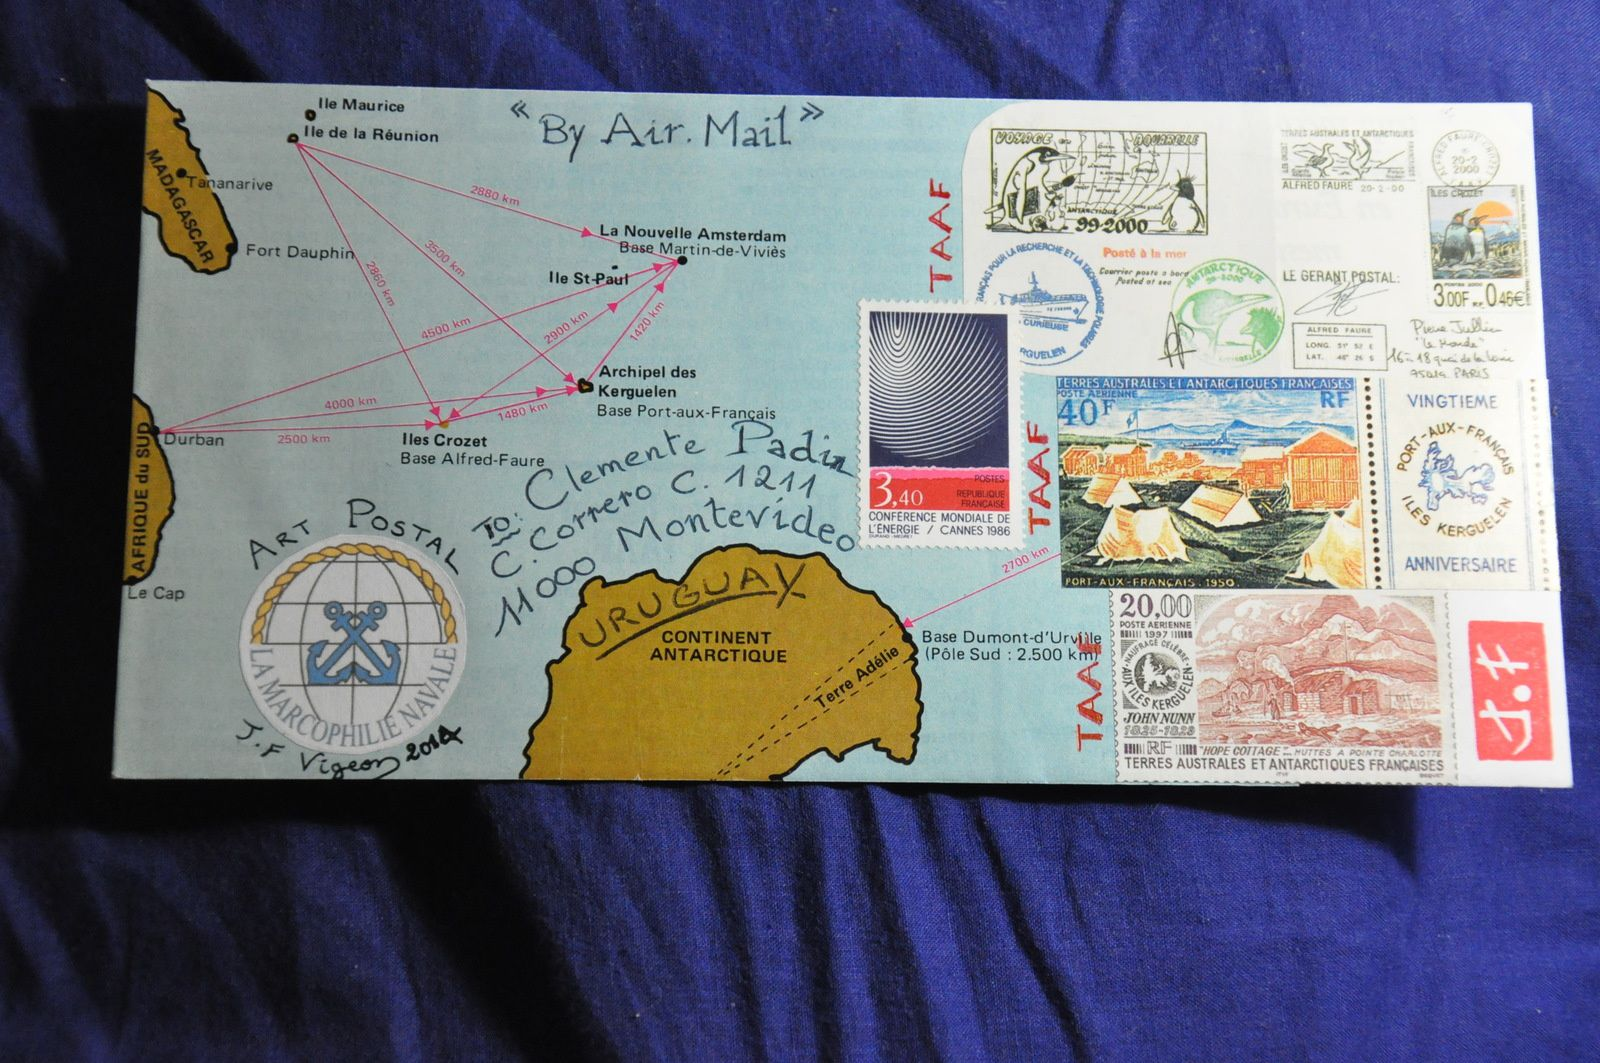 For Clemente Padin, mail artist from URUGUAY!